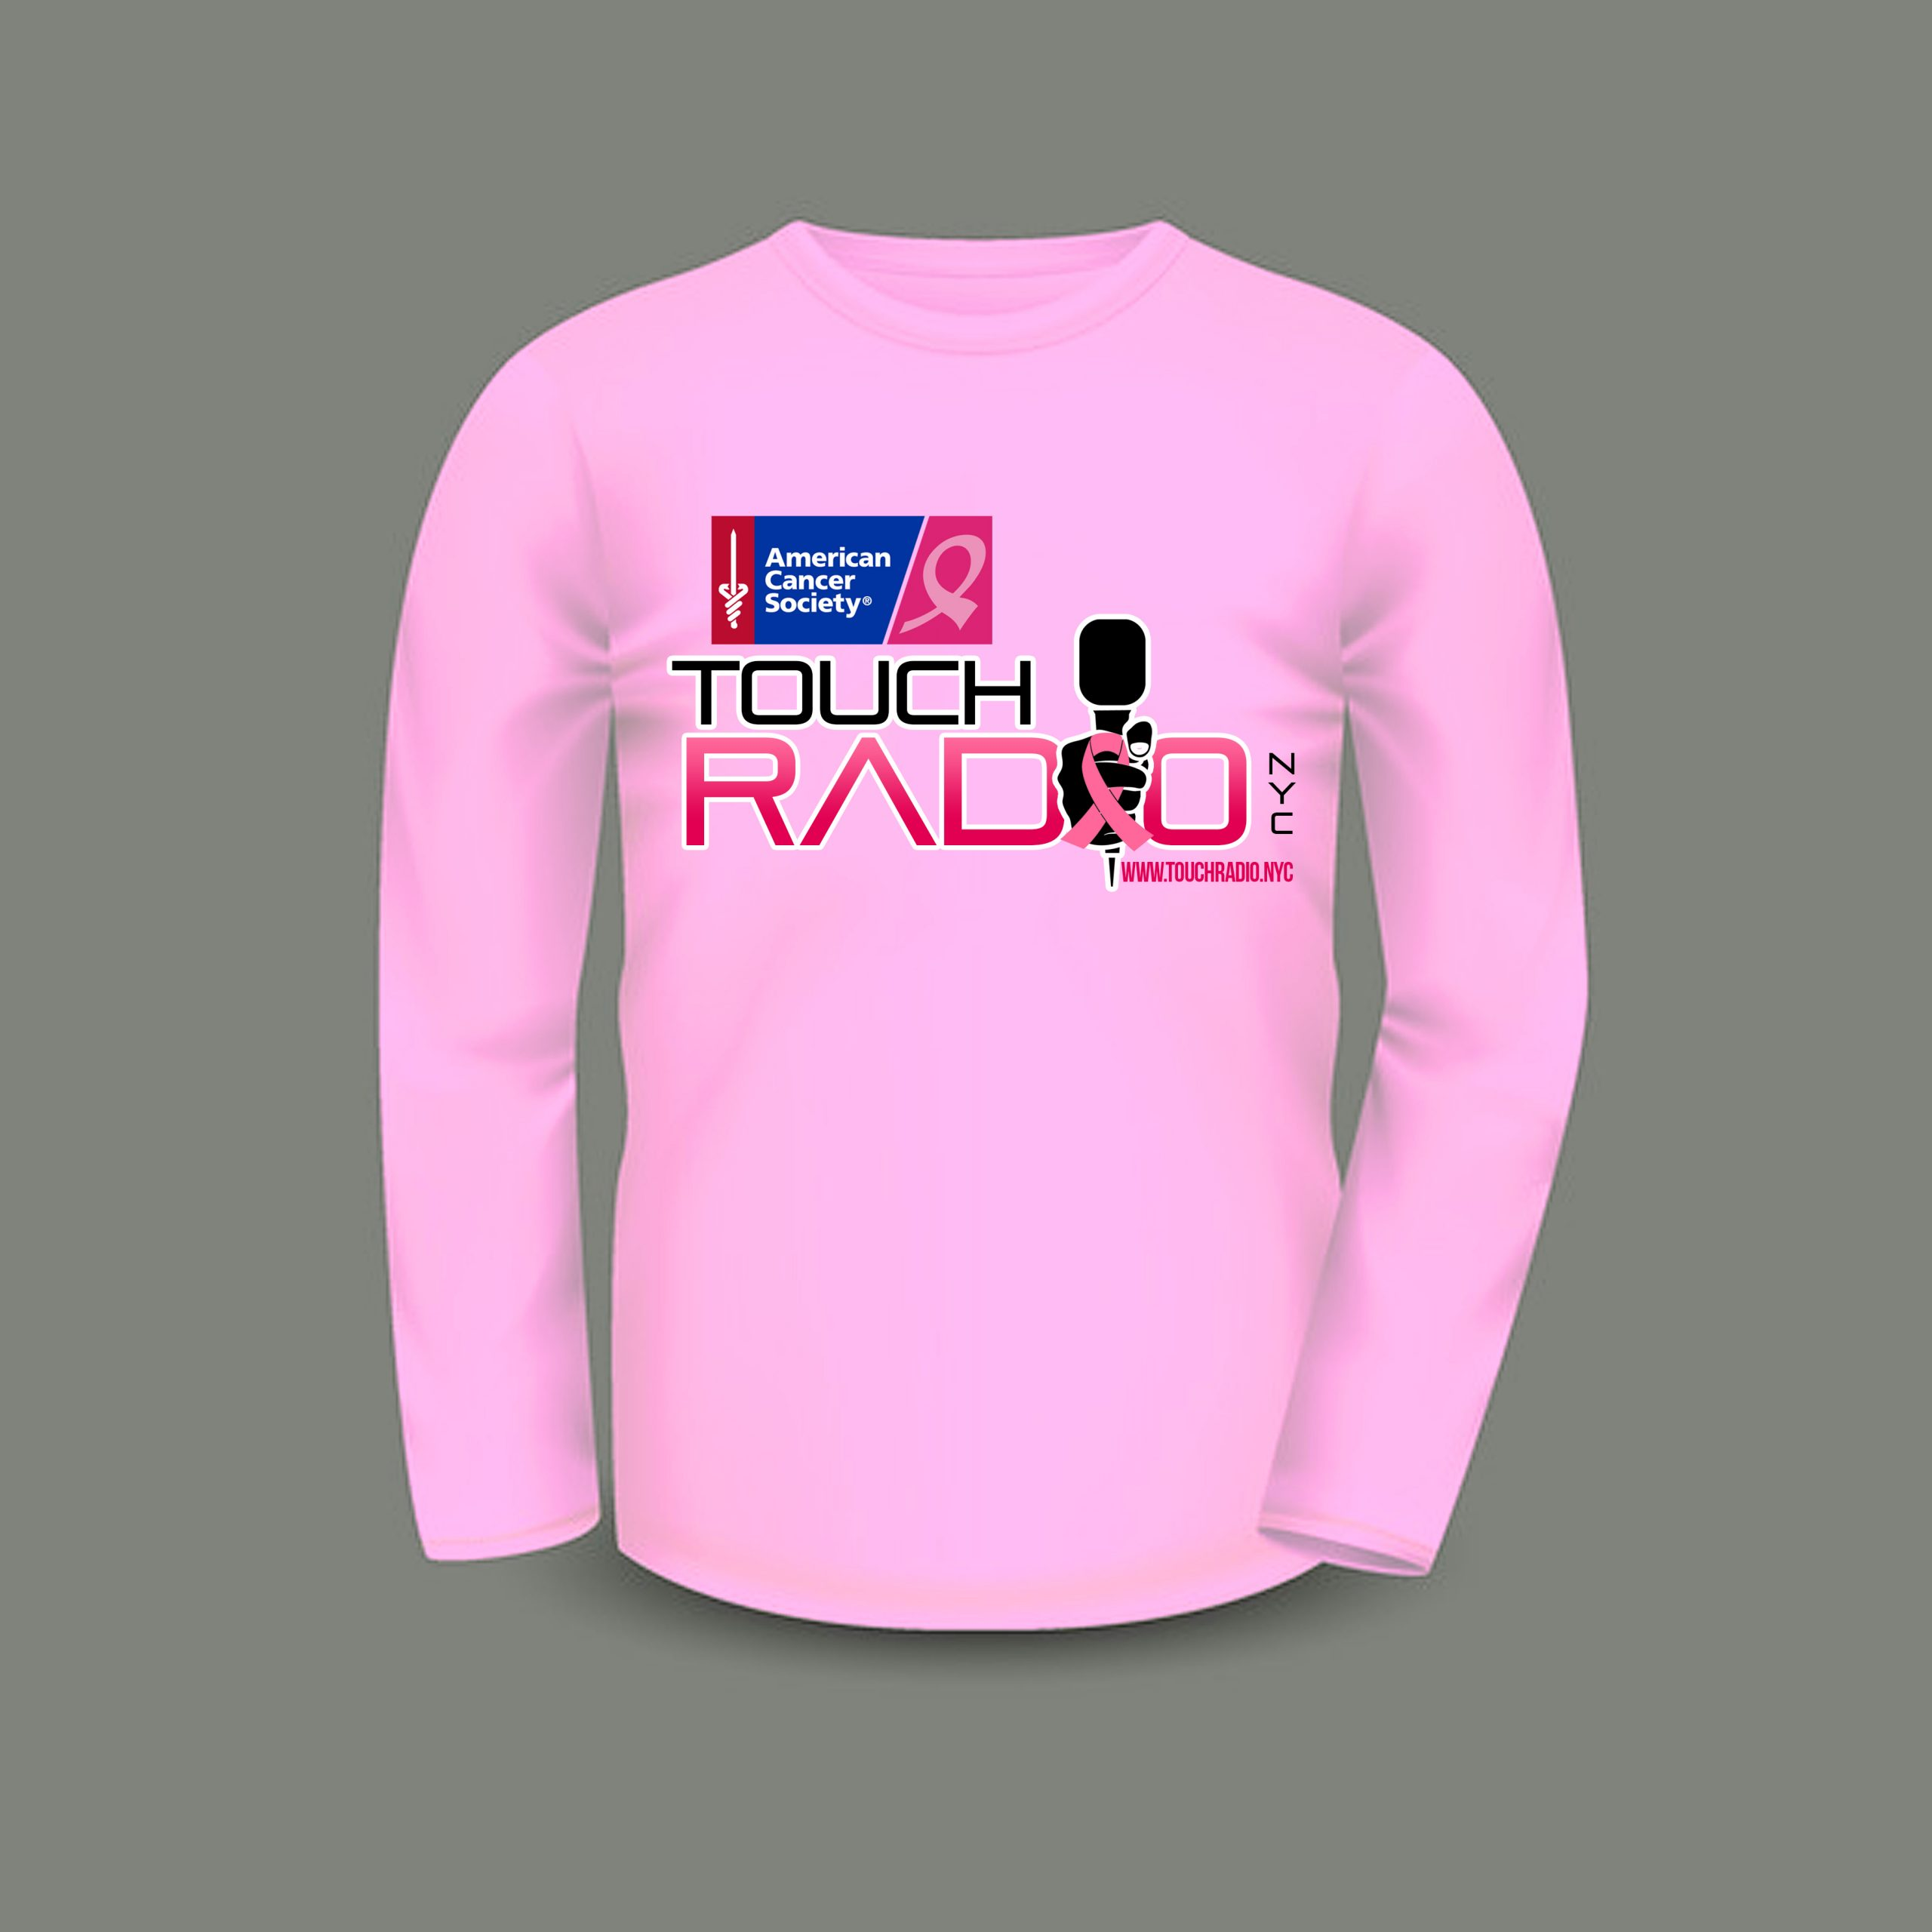 Fundraiser for Making Strides Against Breast Cancer  Male Long Sleeves T-Shirt